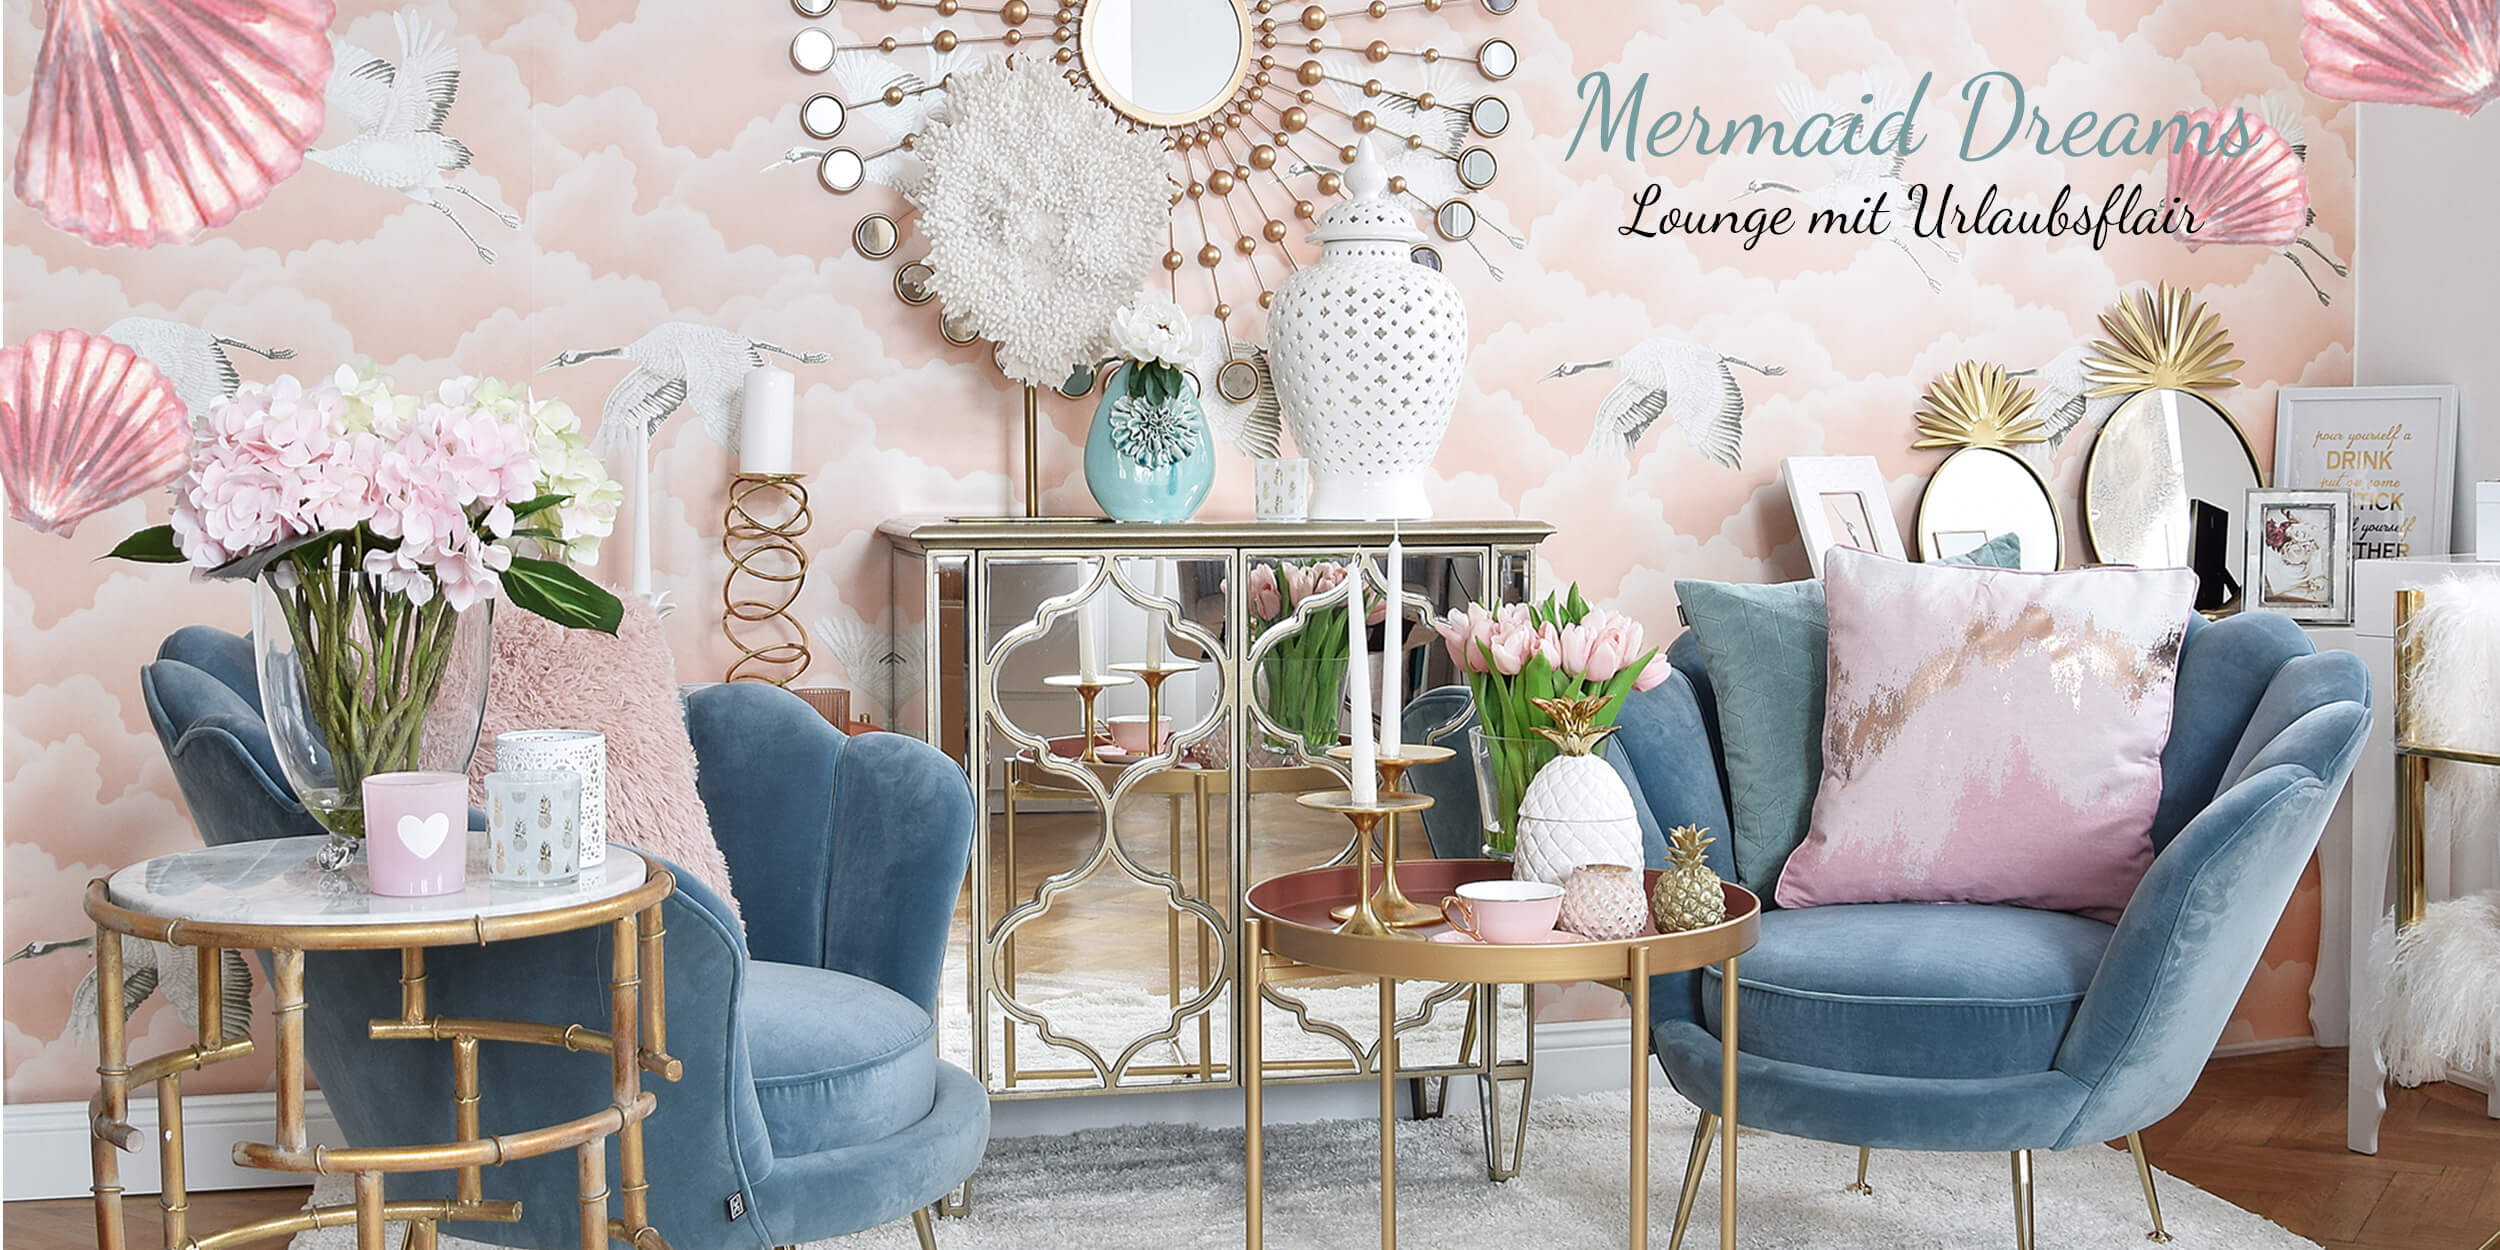 Get the Look: Mermaid Dreams Wohnzimmer-Lounge